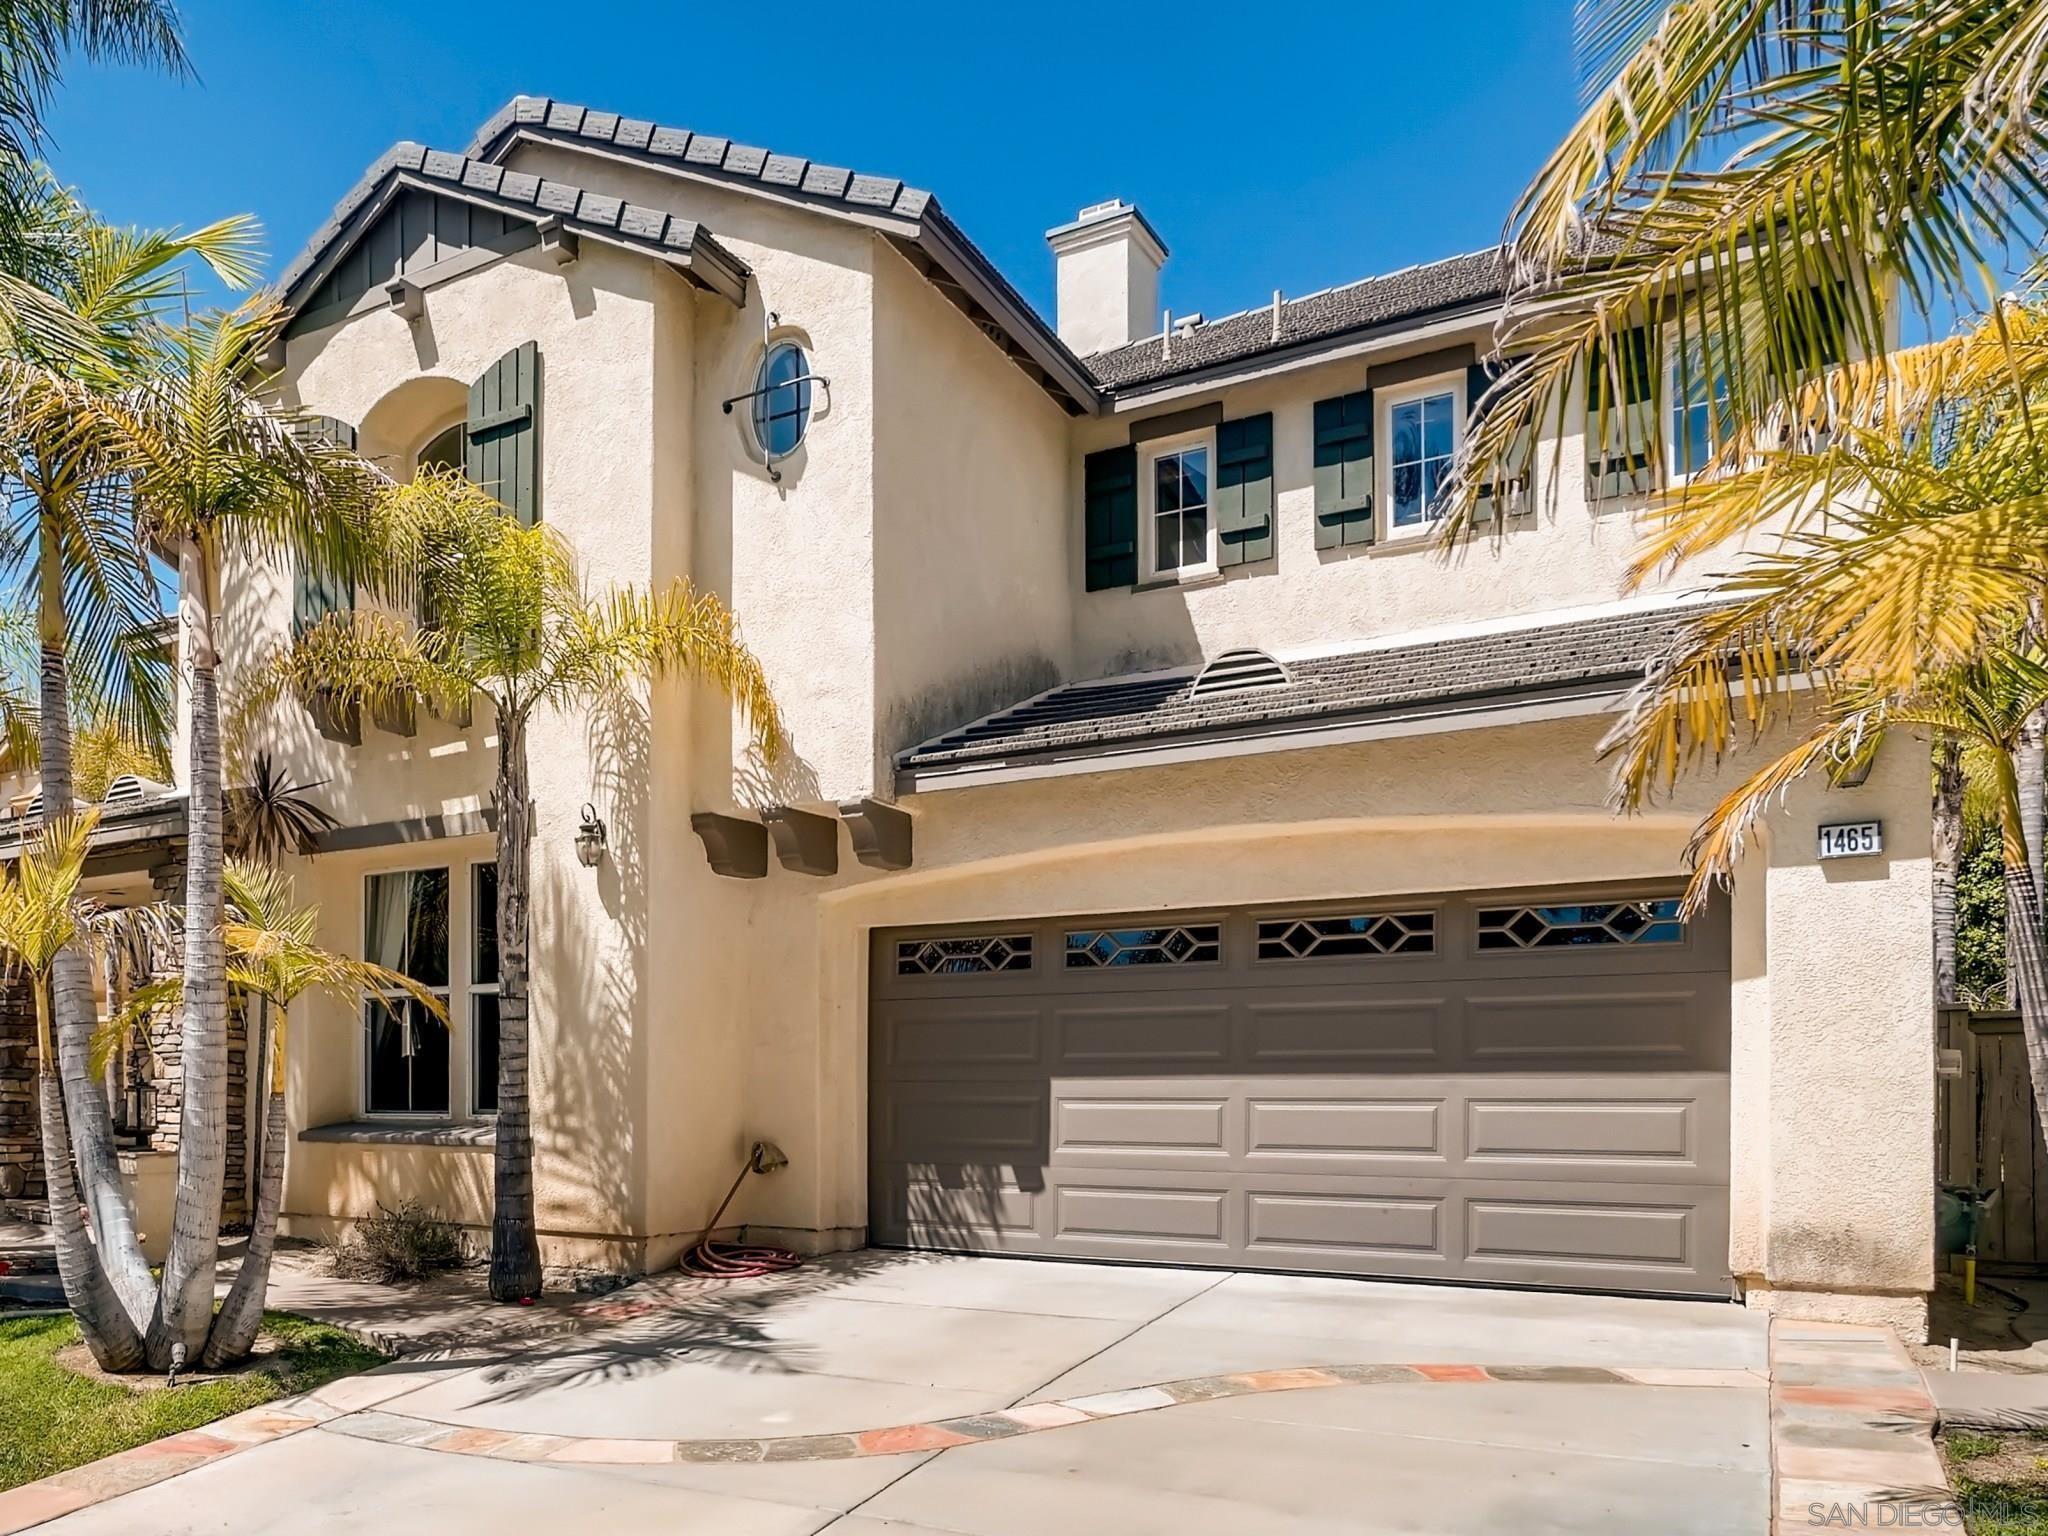 Main Photo: House for sale : 5 bedrooms : 1465 Old Janal Ranch Rd in Chula Vista